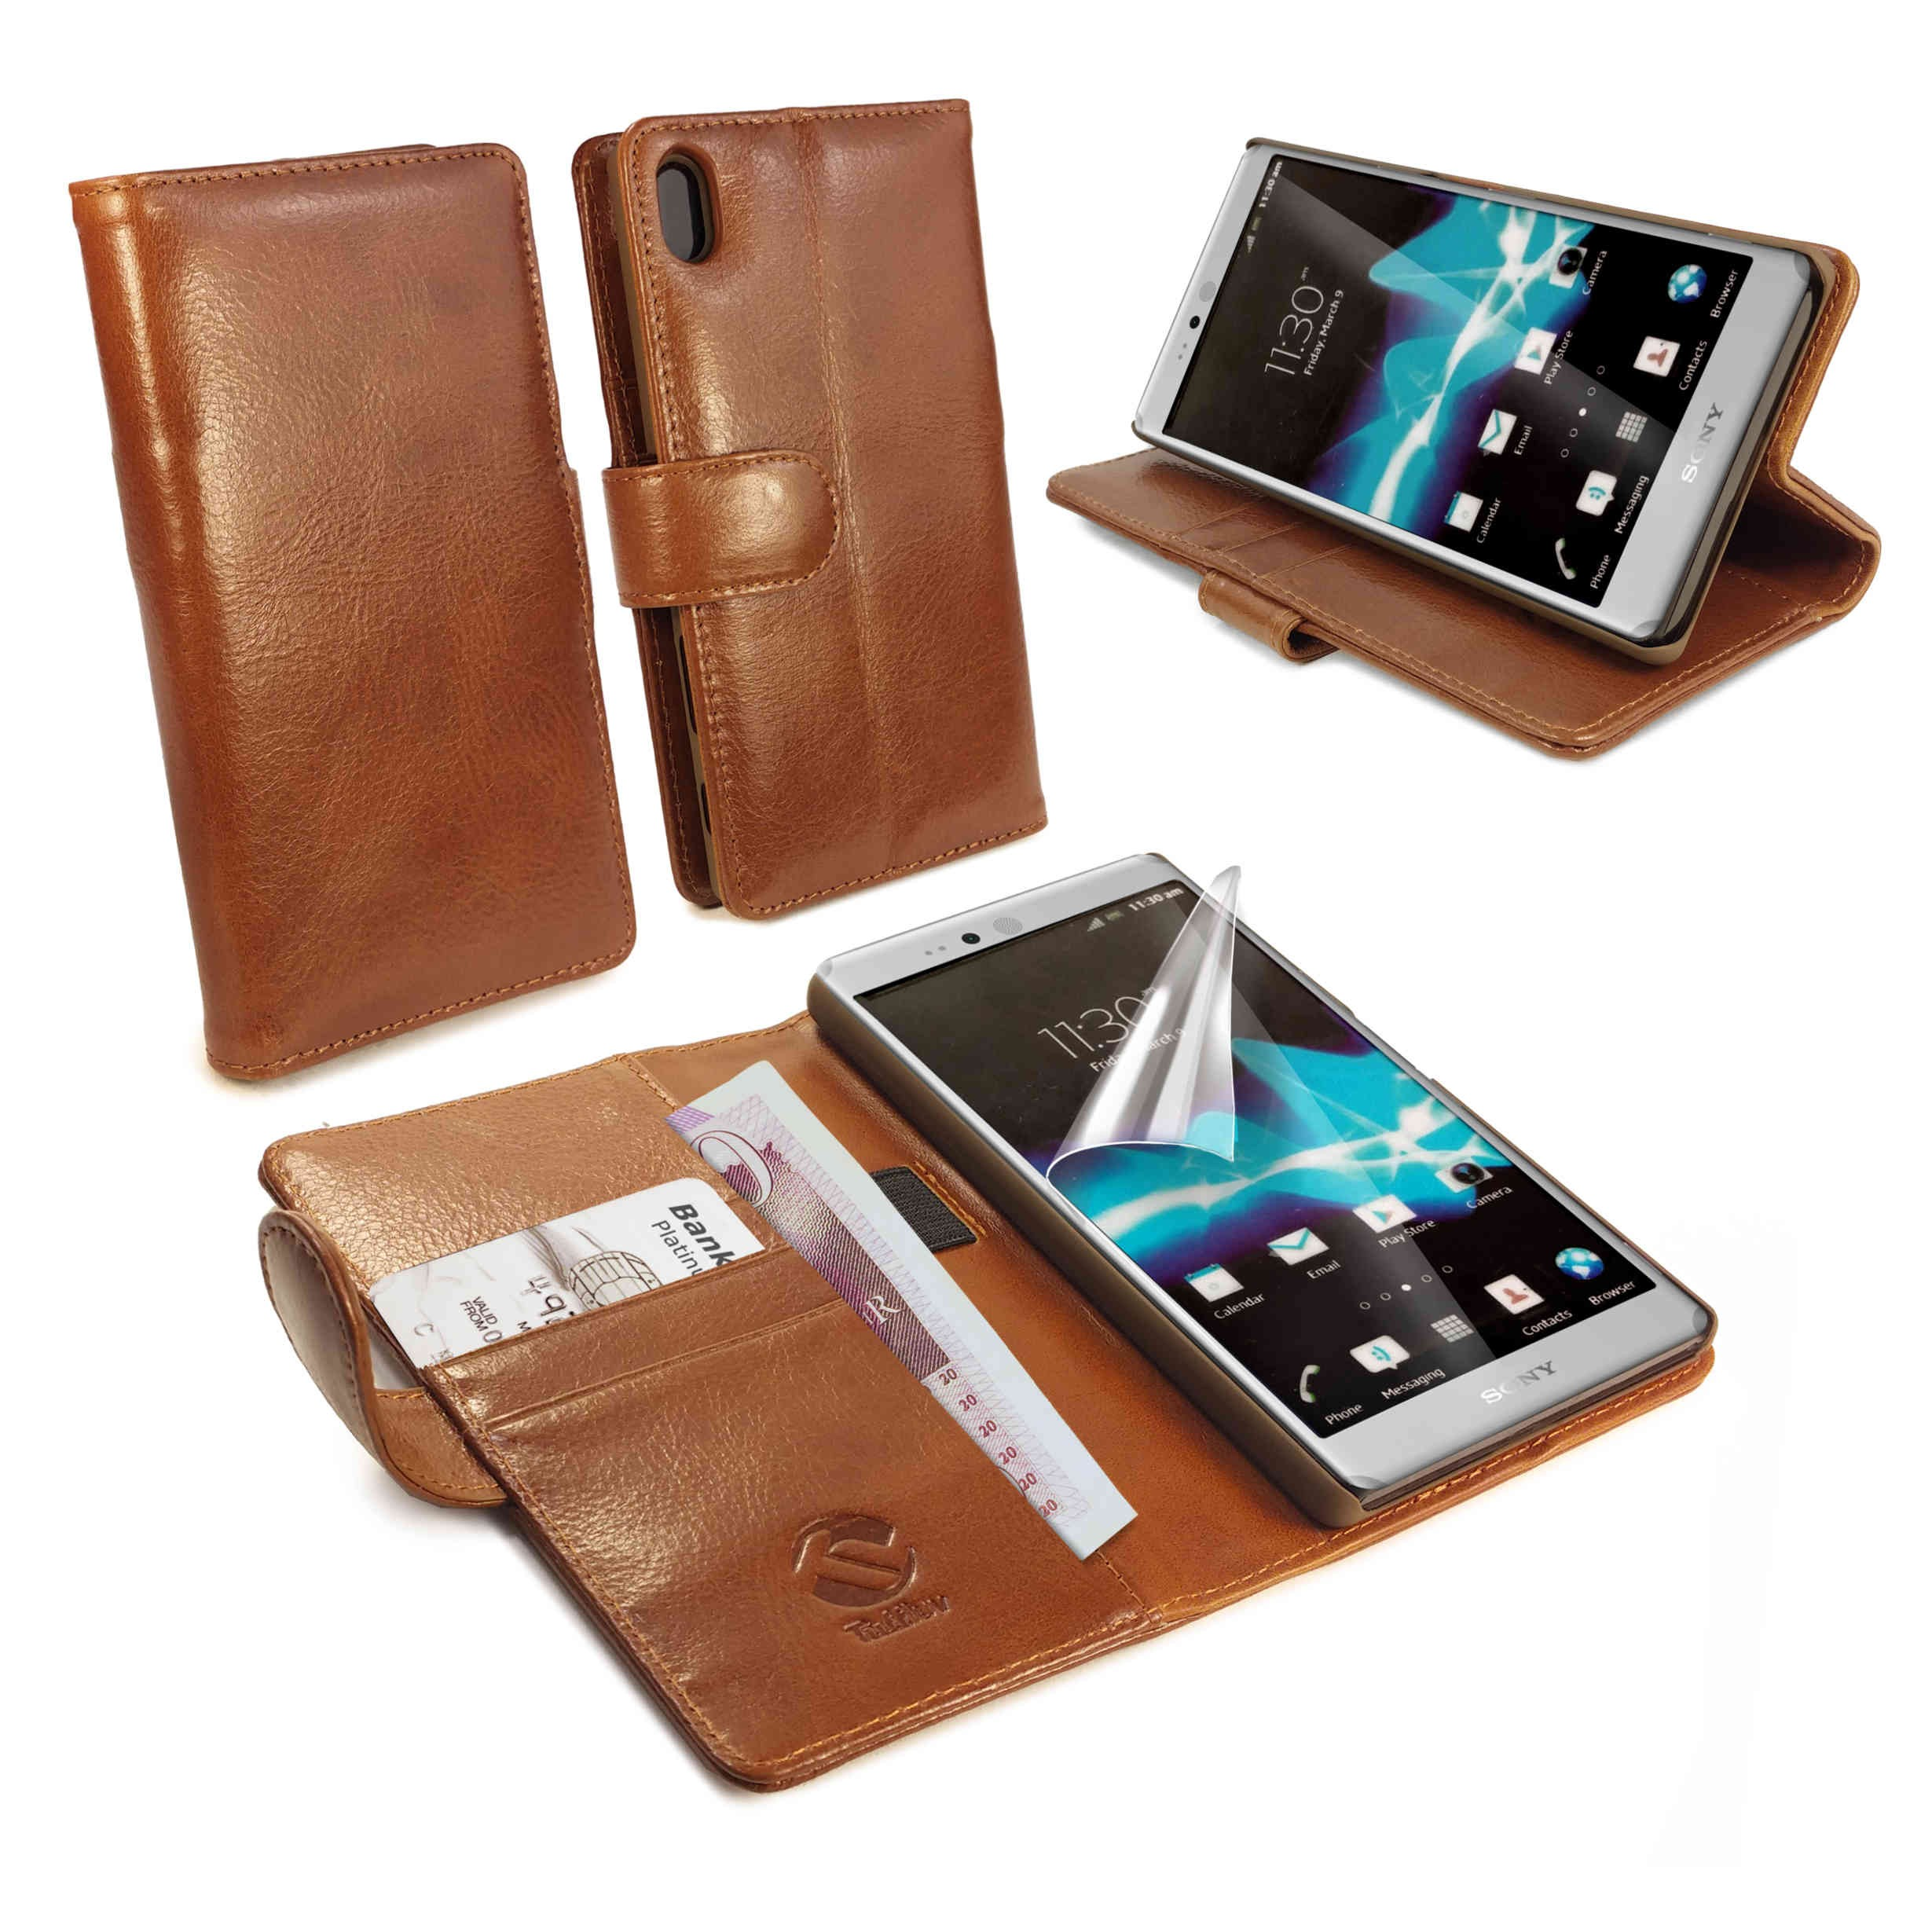 promo code 62777 b61d9 Details about TUFF LUV Leather Wallet / Stand Case for Sony Xperia Z5  Premium Z5+-Brown